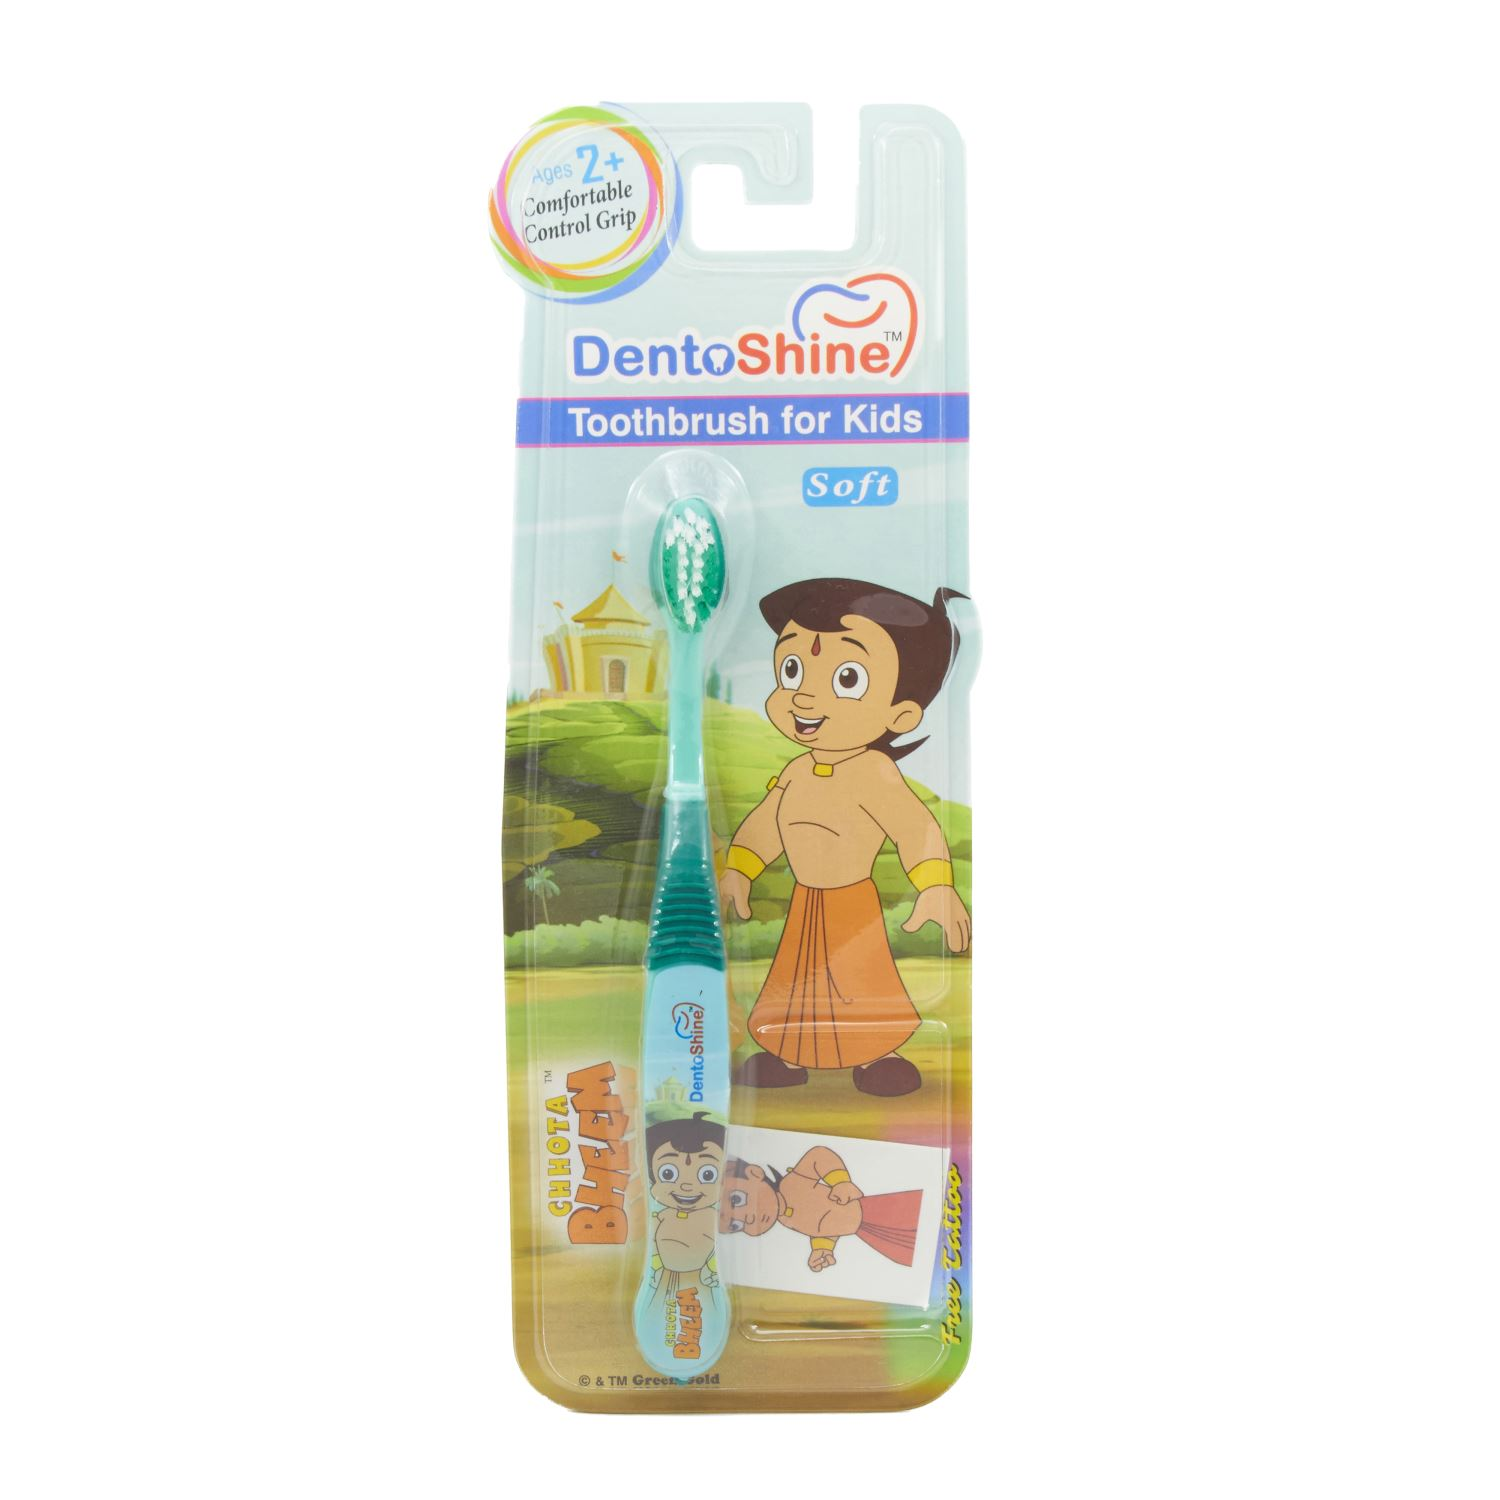 Dentoshine Comfortable Control Grip Toothbrush 2 Year+